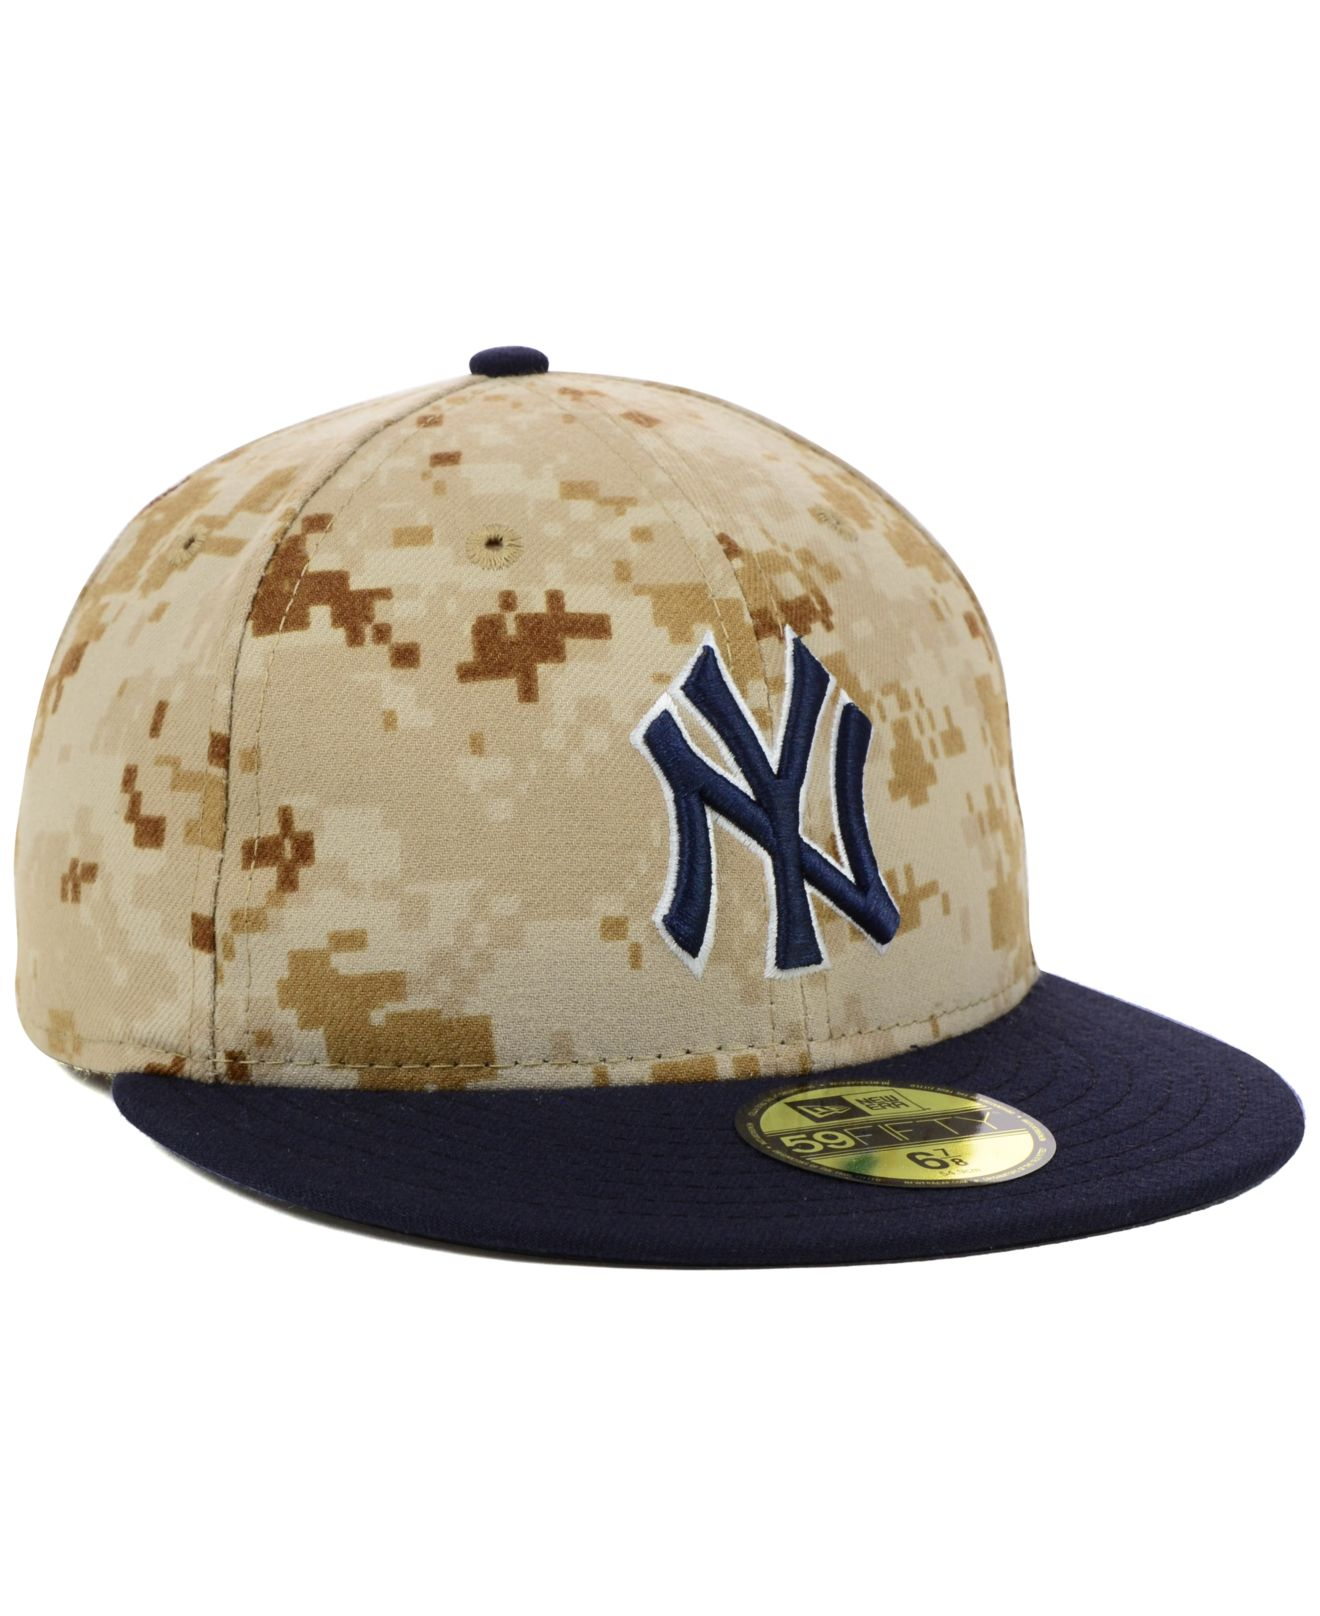 1bccb4c1114 Lyst - KTZ New York Yankees 2014 Stars And Stripes 59fifty Cap in ...